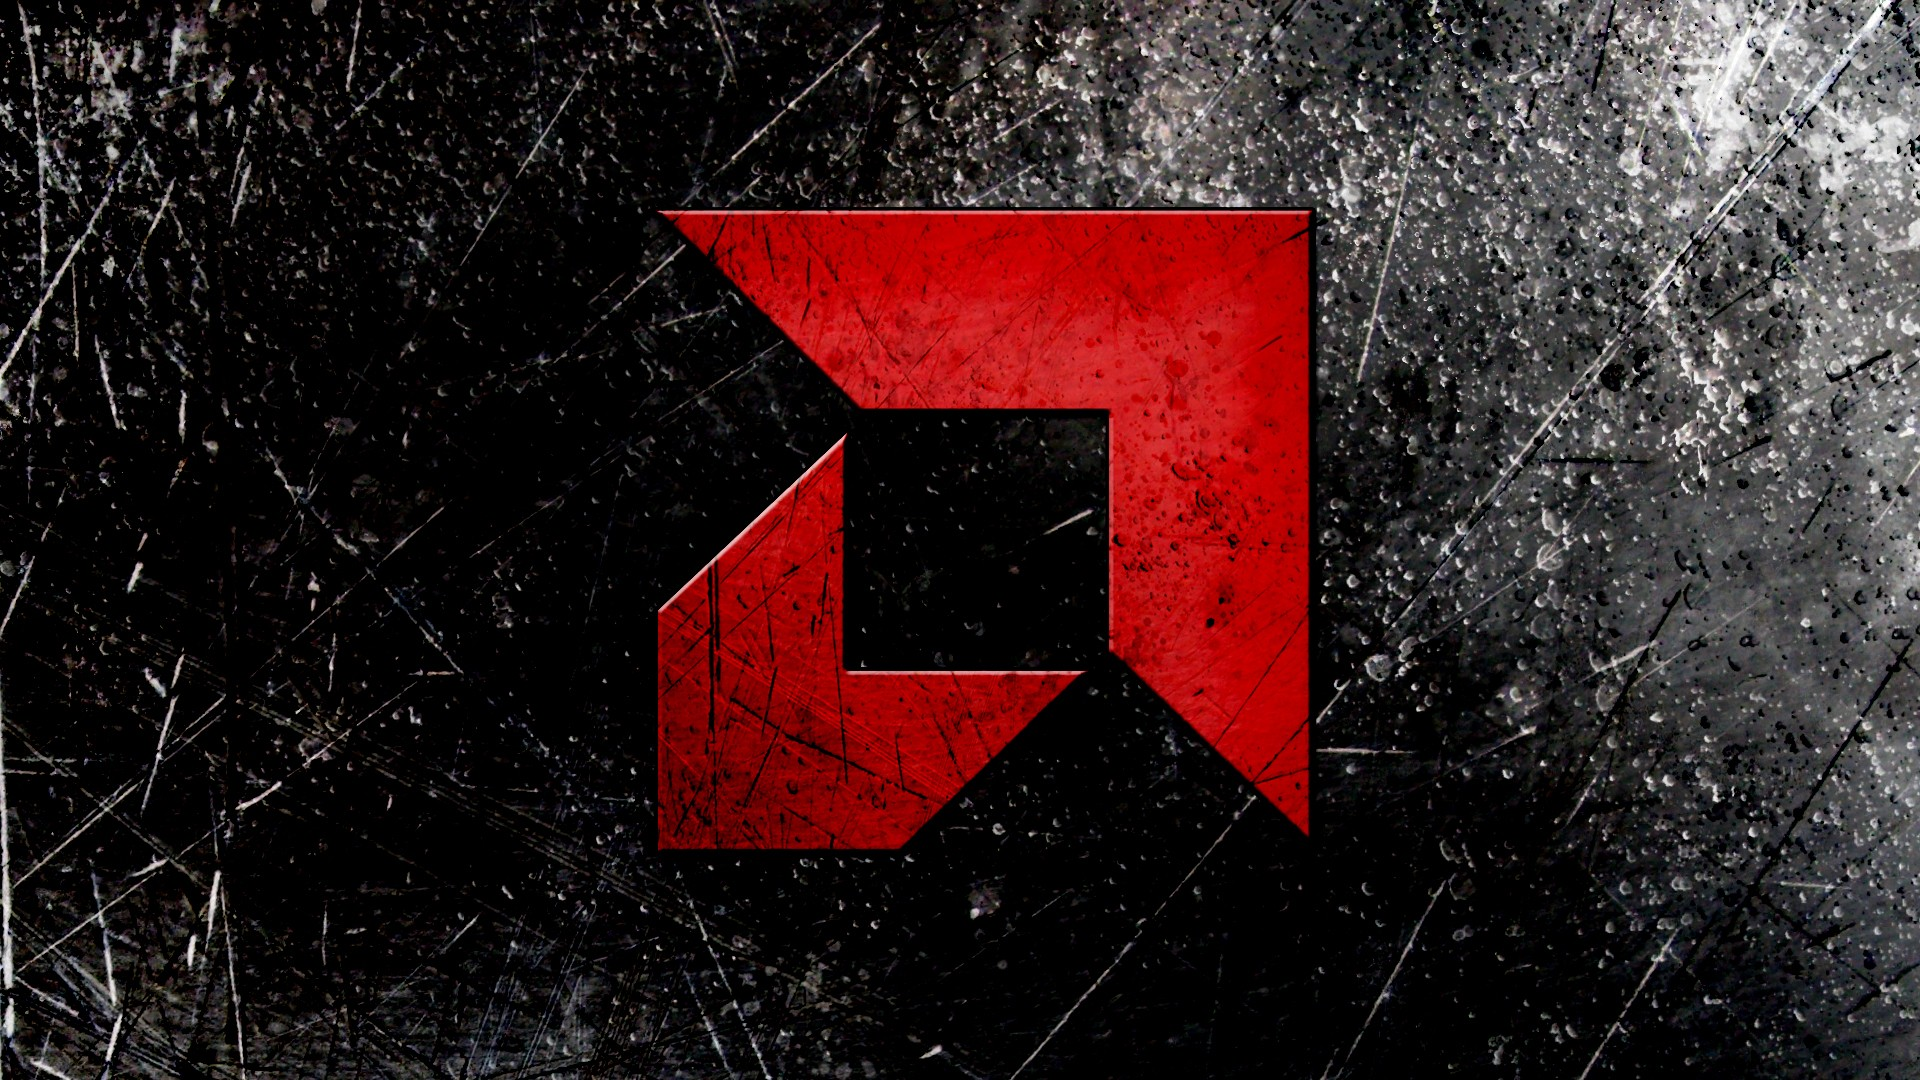 amd-red-bright-inverted-logo-wallpaper